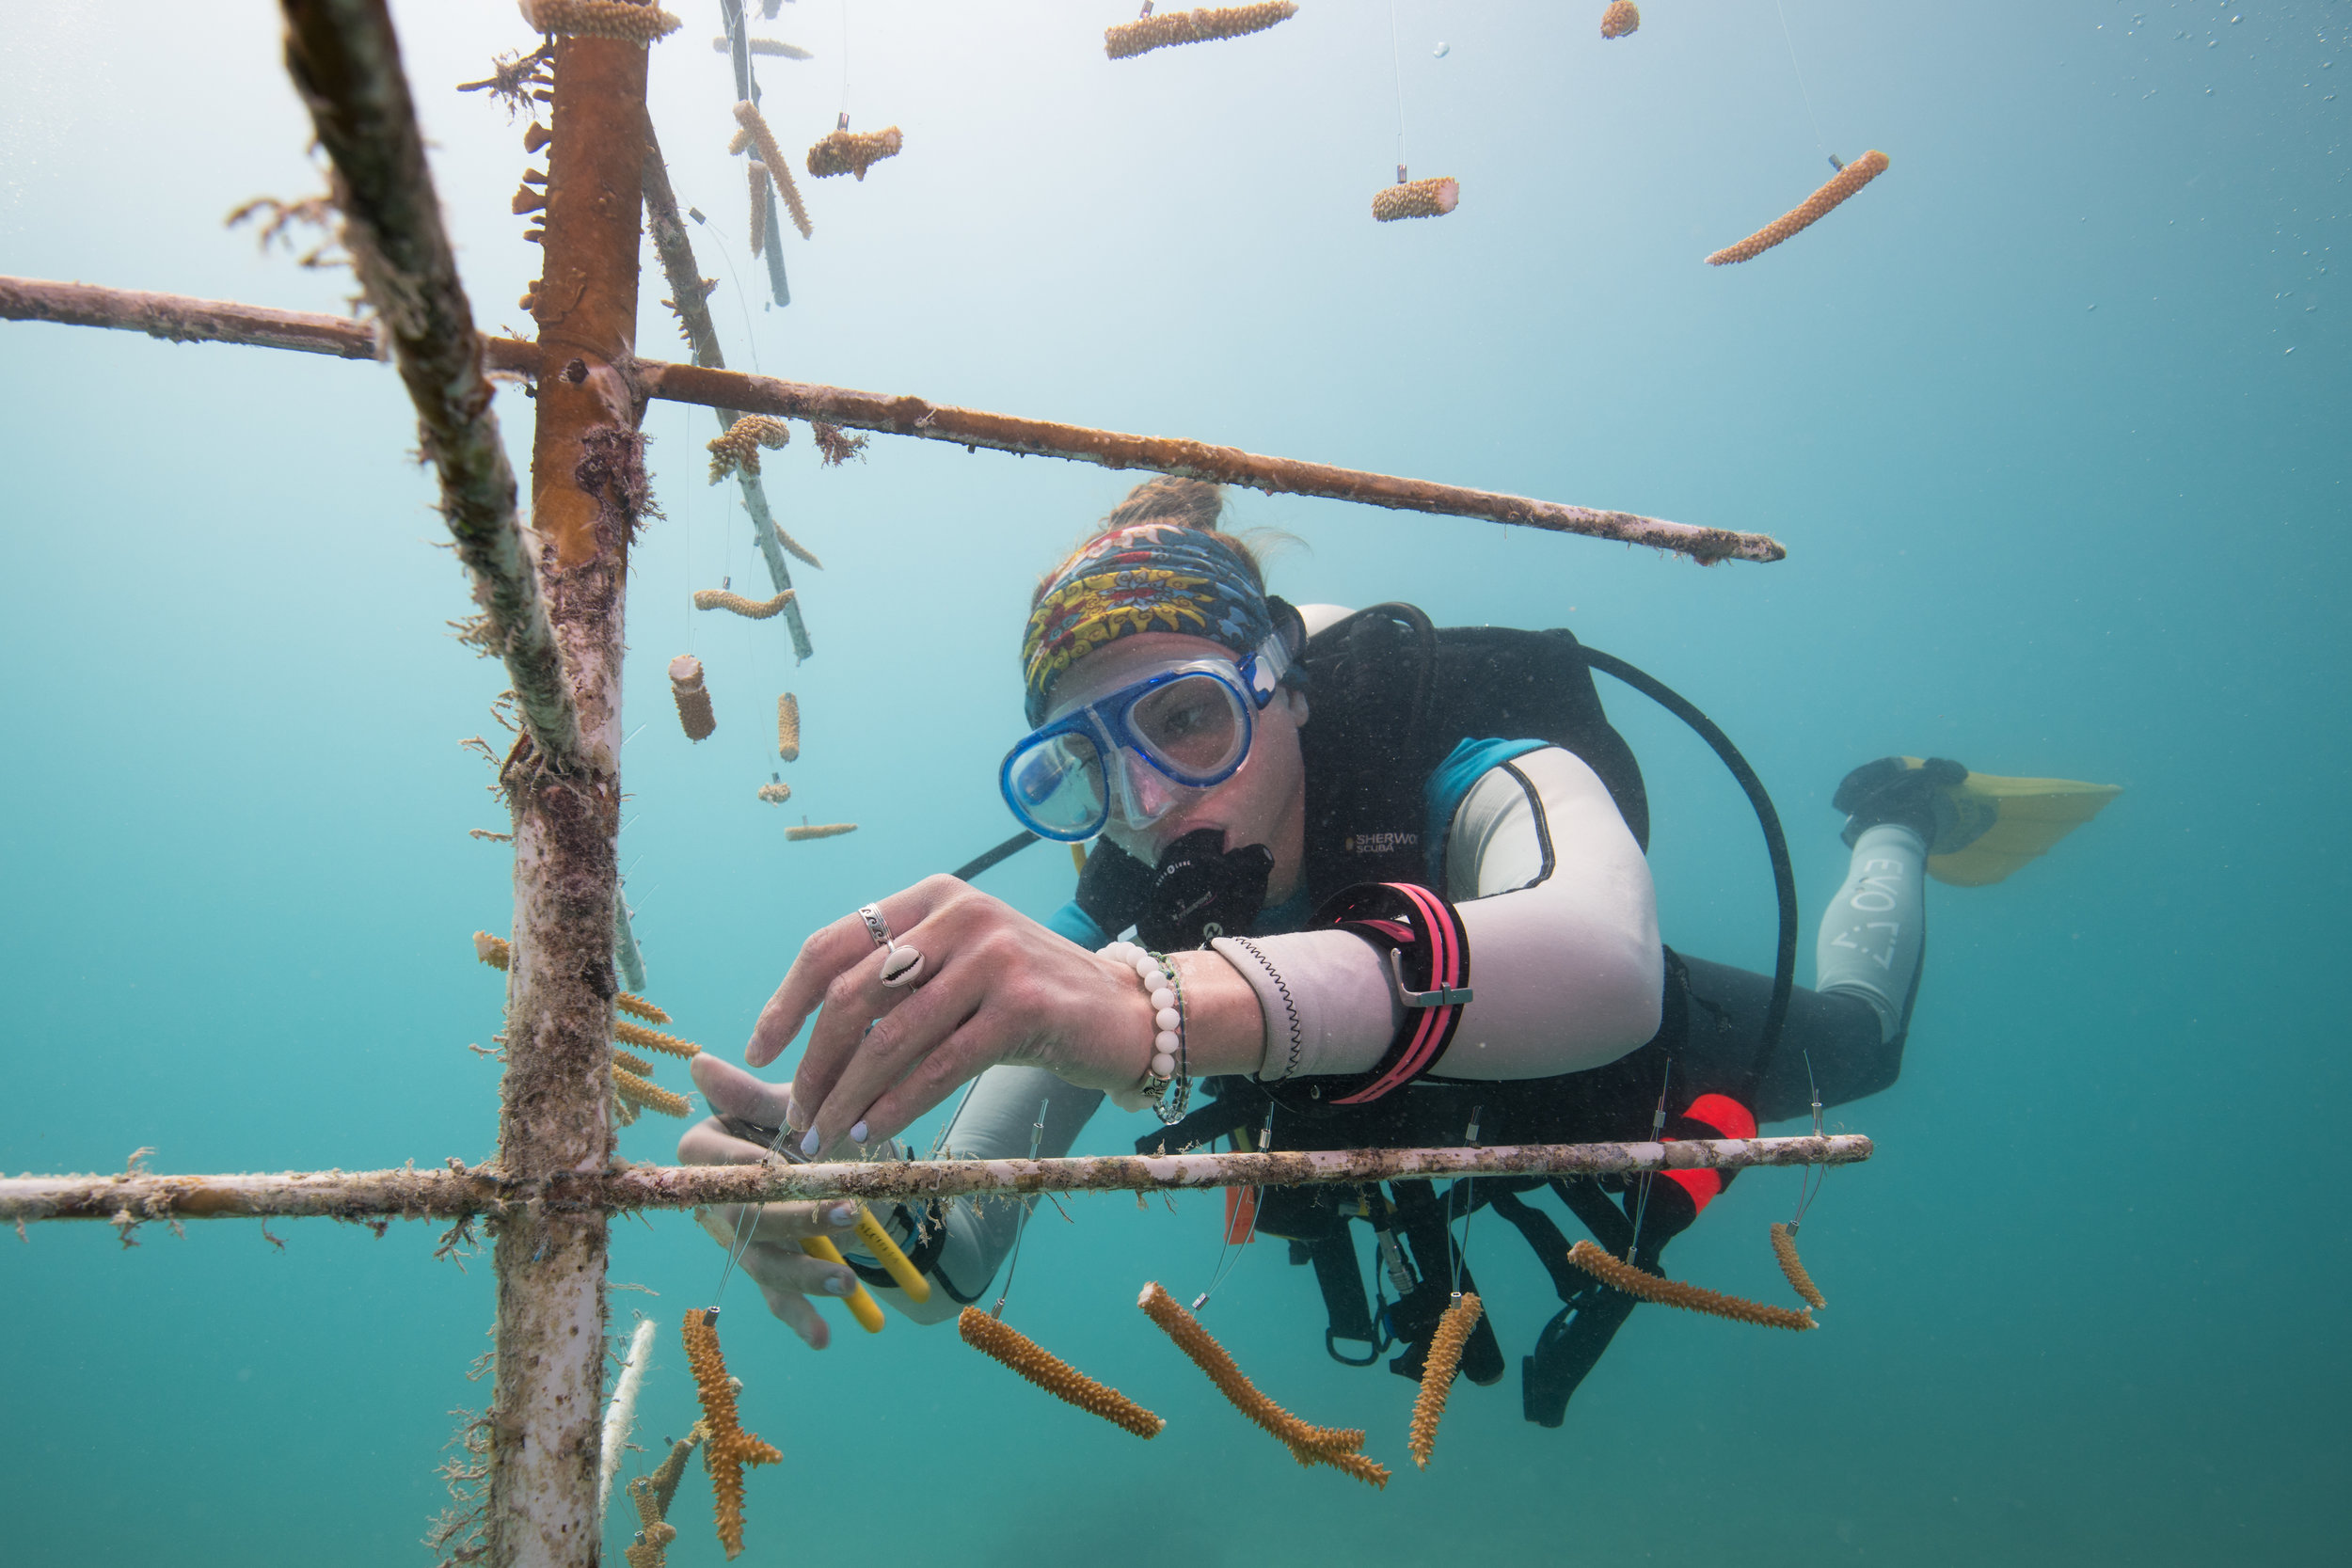 JENNIFER ADLER  www.jenniferadlerphotography.com  |  @jmadler   Rebecah Delp hangs pieces of staghorn coral ( Acropora cervicornis ) on a coral tree in Dry Tortugas National Park. The corals hang like ornaments on a Christmas tree, but unlike their coniferous counterparts, these trees stay decorated for a year as the corals grow. When a year is up, scientists return and cut the corals from the trees to plant on nearby reefs.   From The Nature Conservancy:    Nurseries Restore Staghorn Coral in the Florida Keys